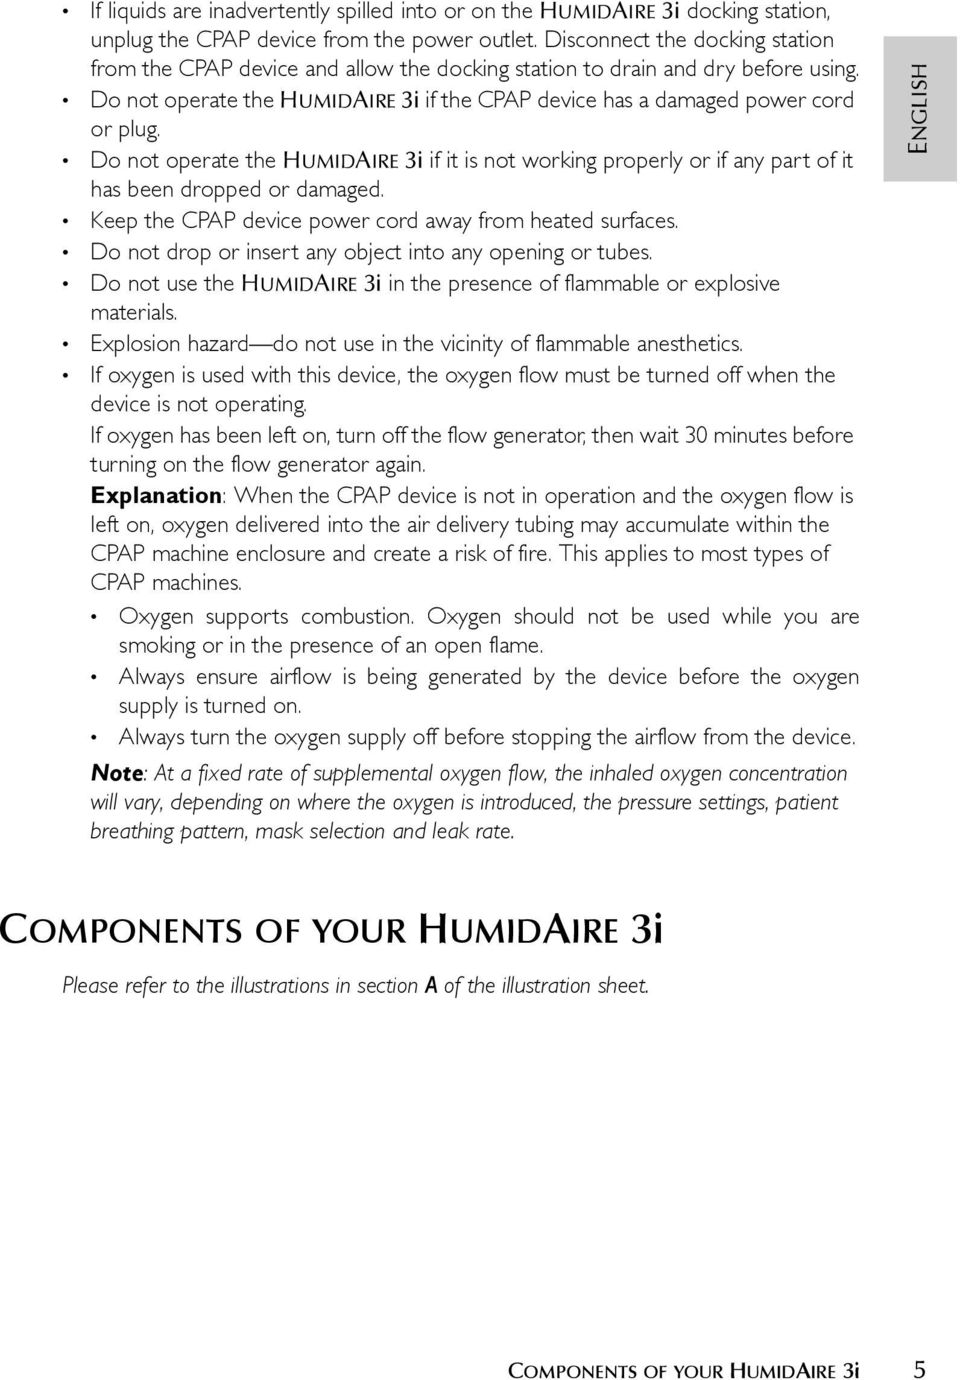 Do not operate the HUMIDAIRE 3i if it is not working properly or if any part of it has been dropped or damaged. Keep the CPAP device power cord away from heated surfaces.